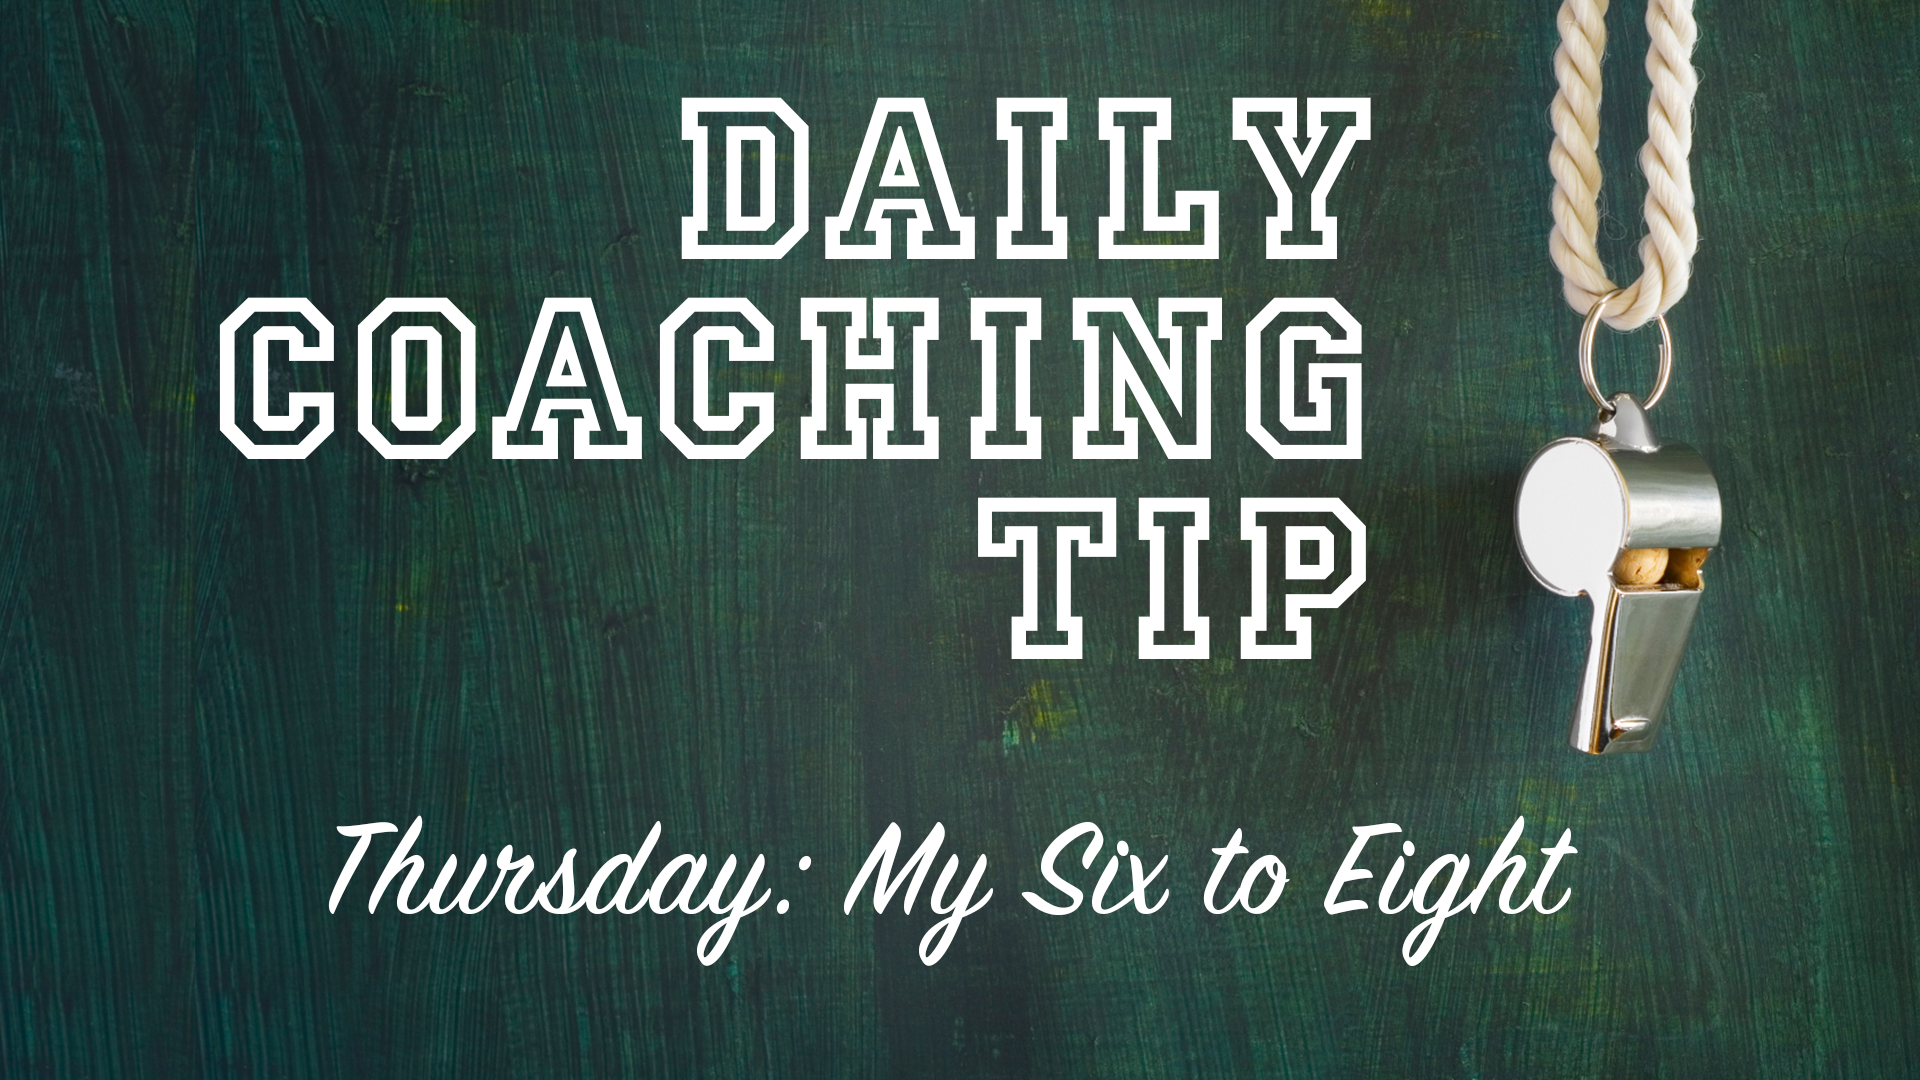 Daily Coaching Tip, Thursday, April 21, 2016